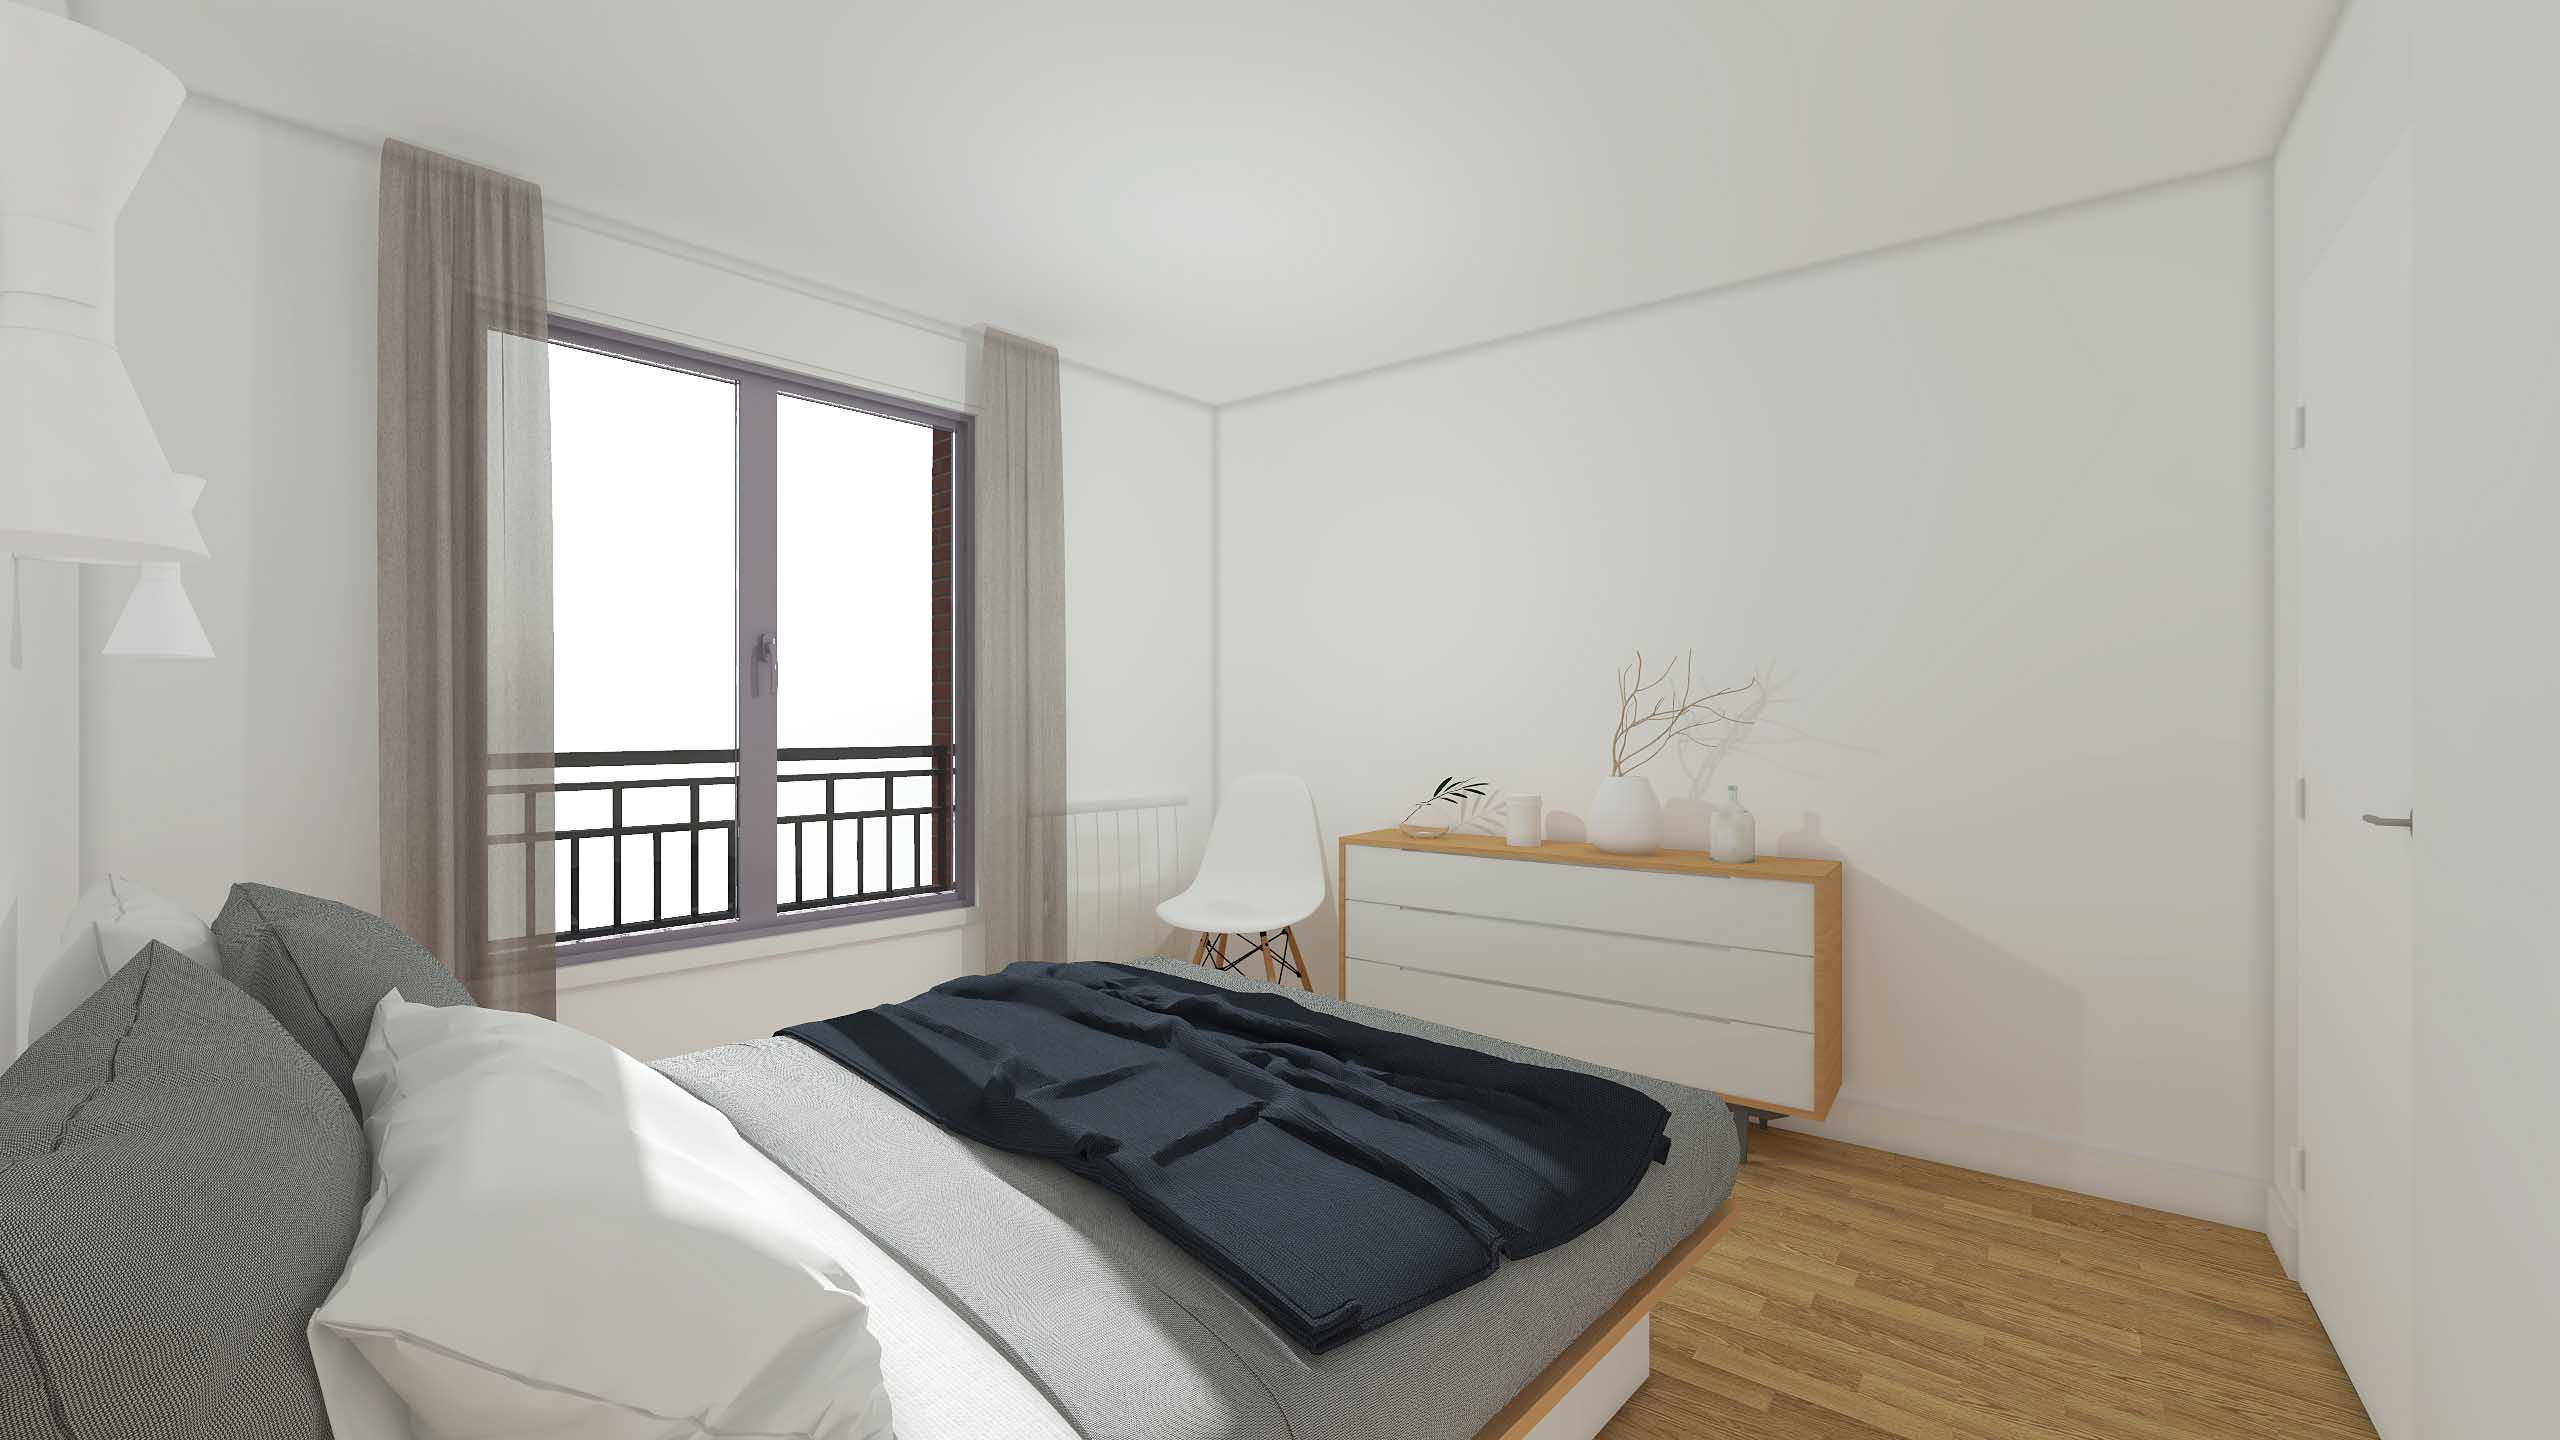 immobilier neuf Rouen chambre